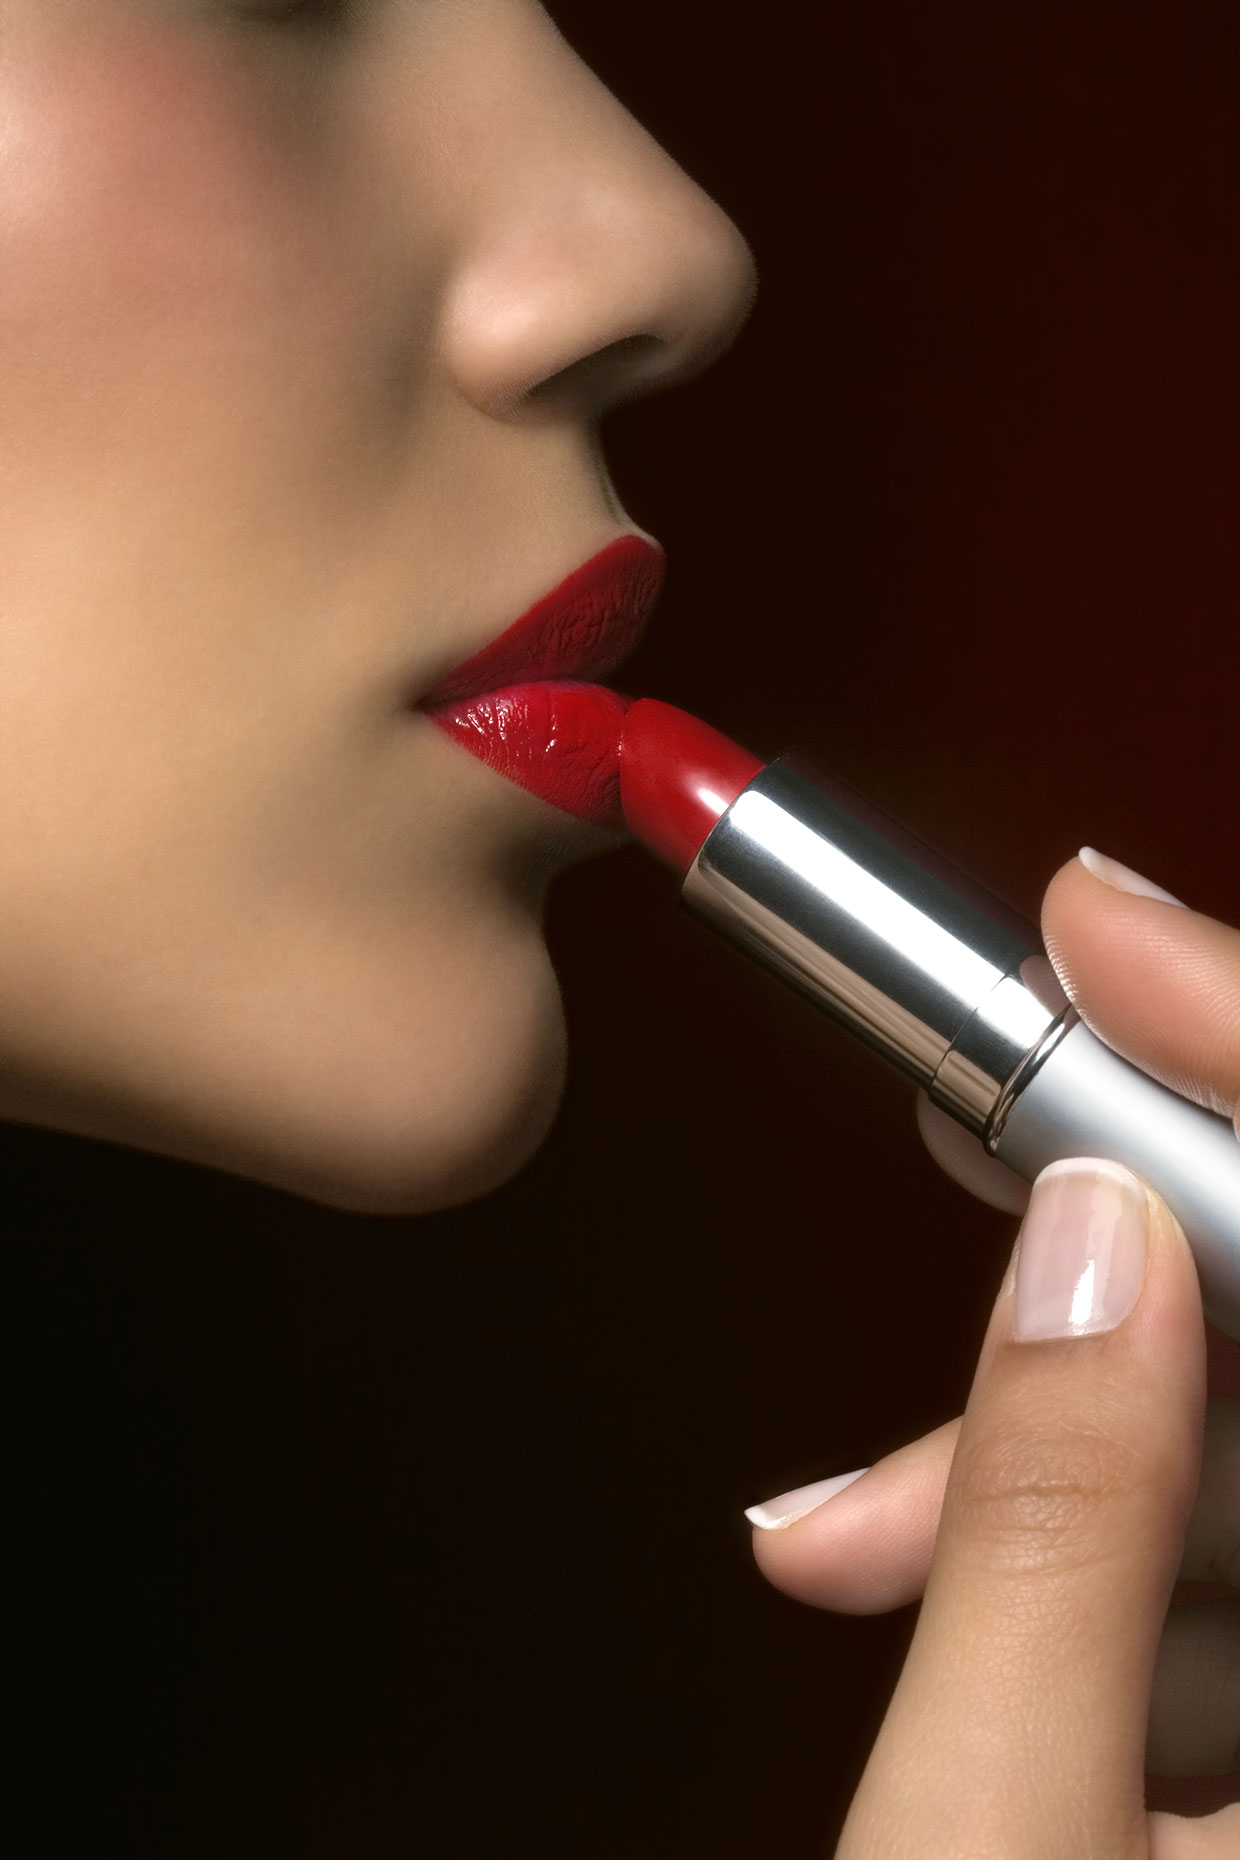 Young woman applying lipstick, close-up